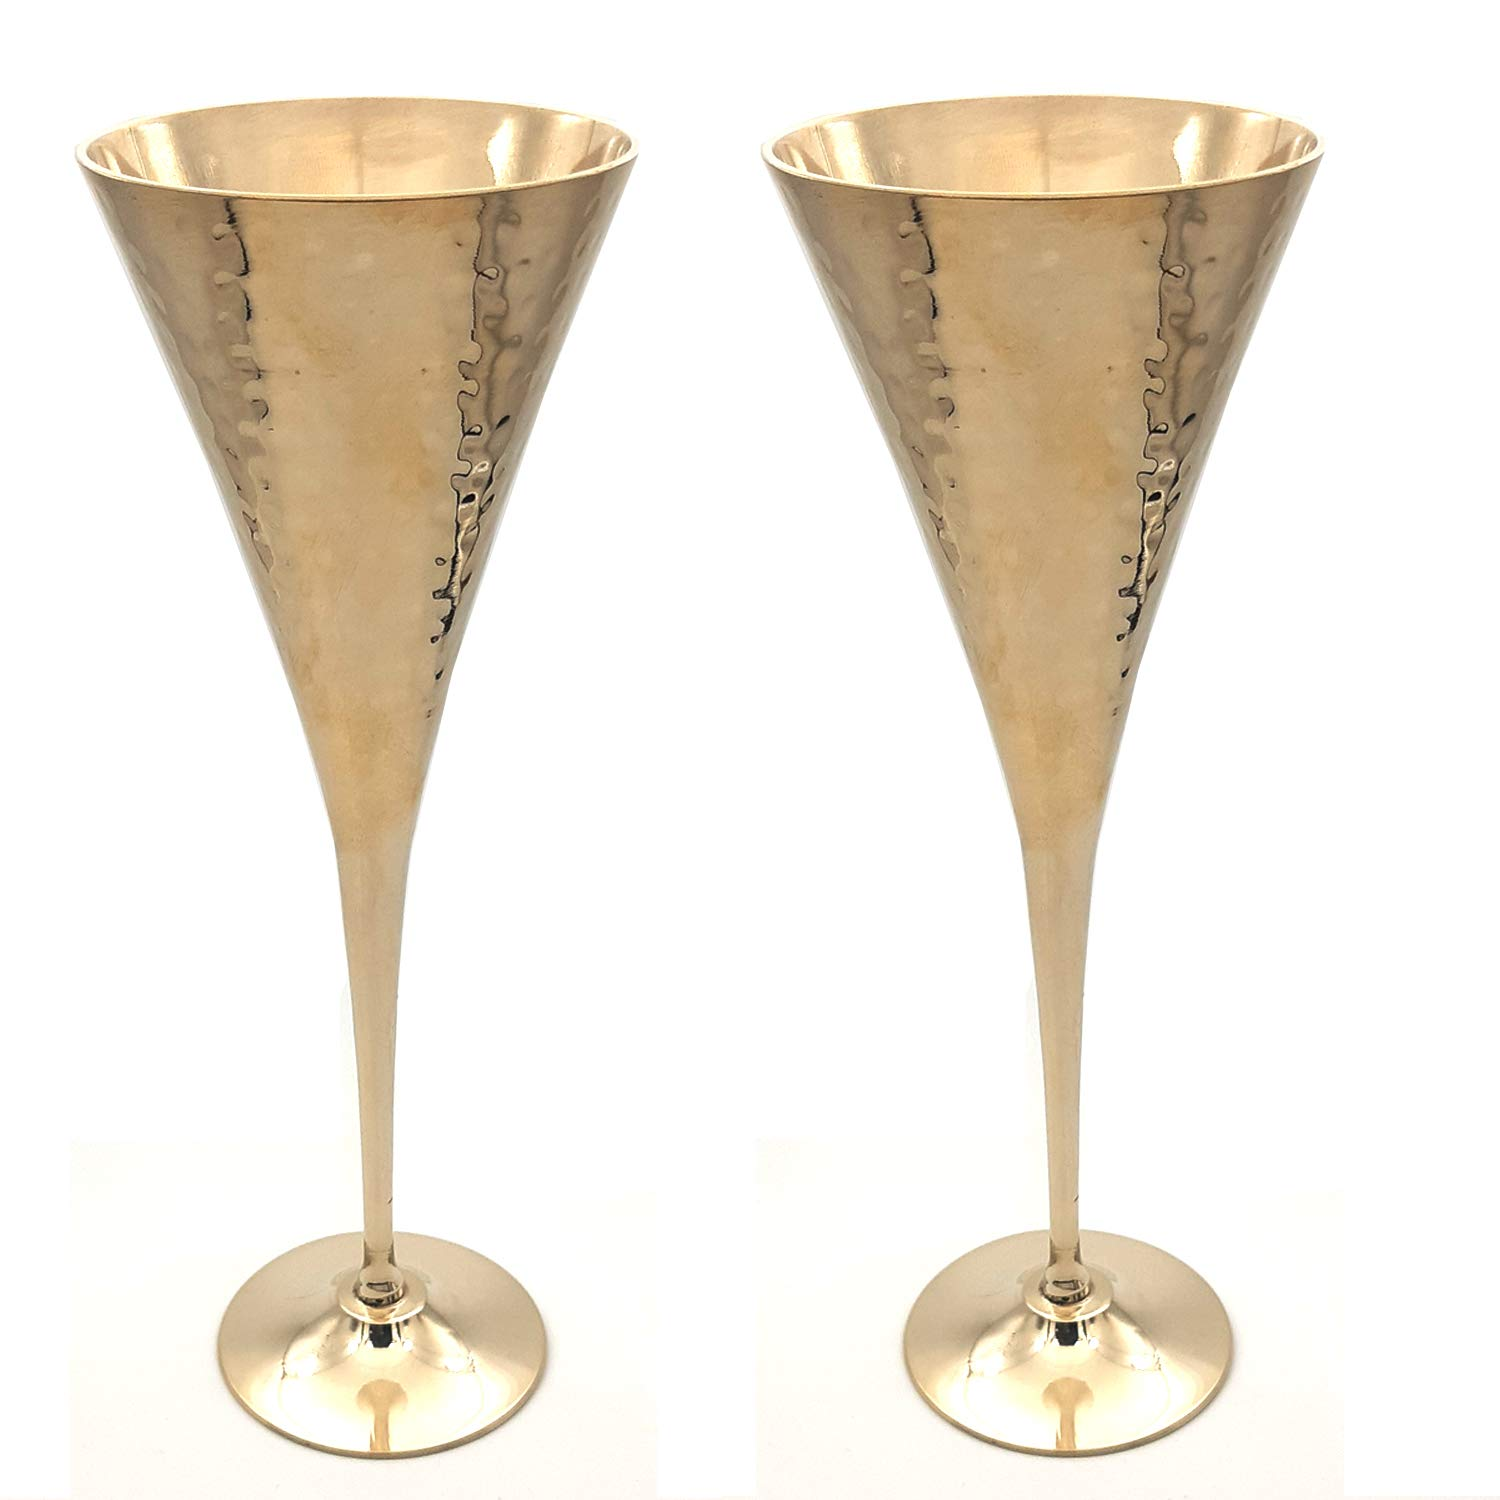 200 ml Brass Hammered Goblet Royal Chalice Champagne Flutes Coupes Wine Glass Set of 2